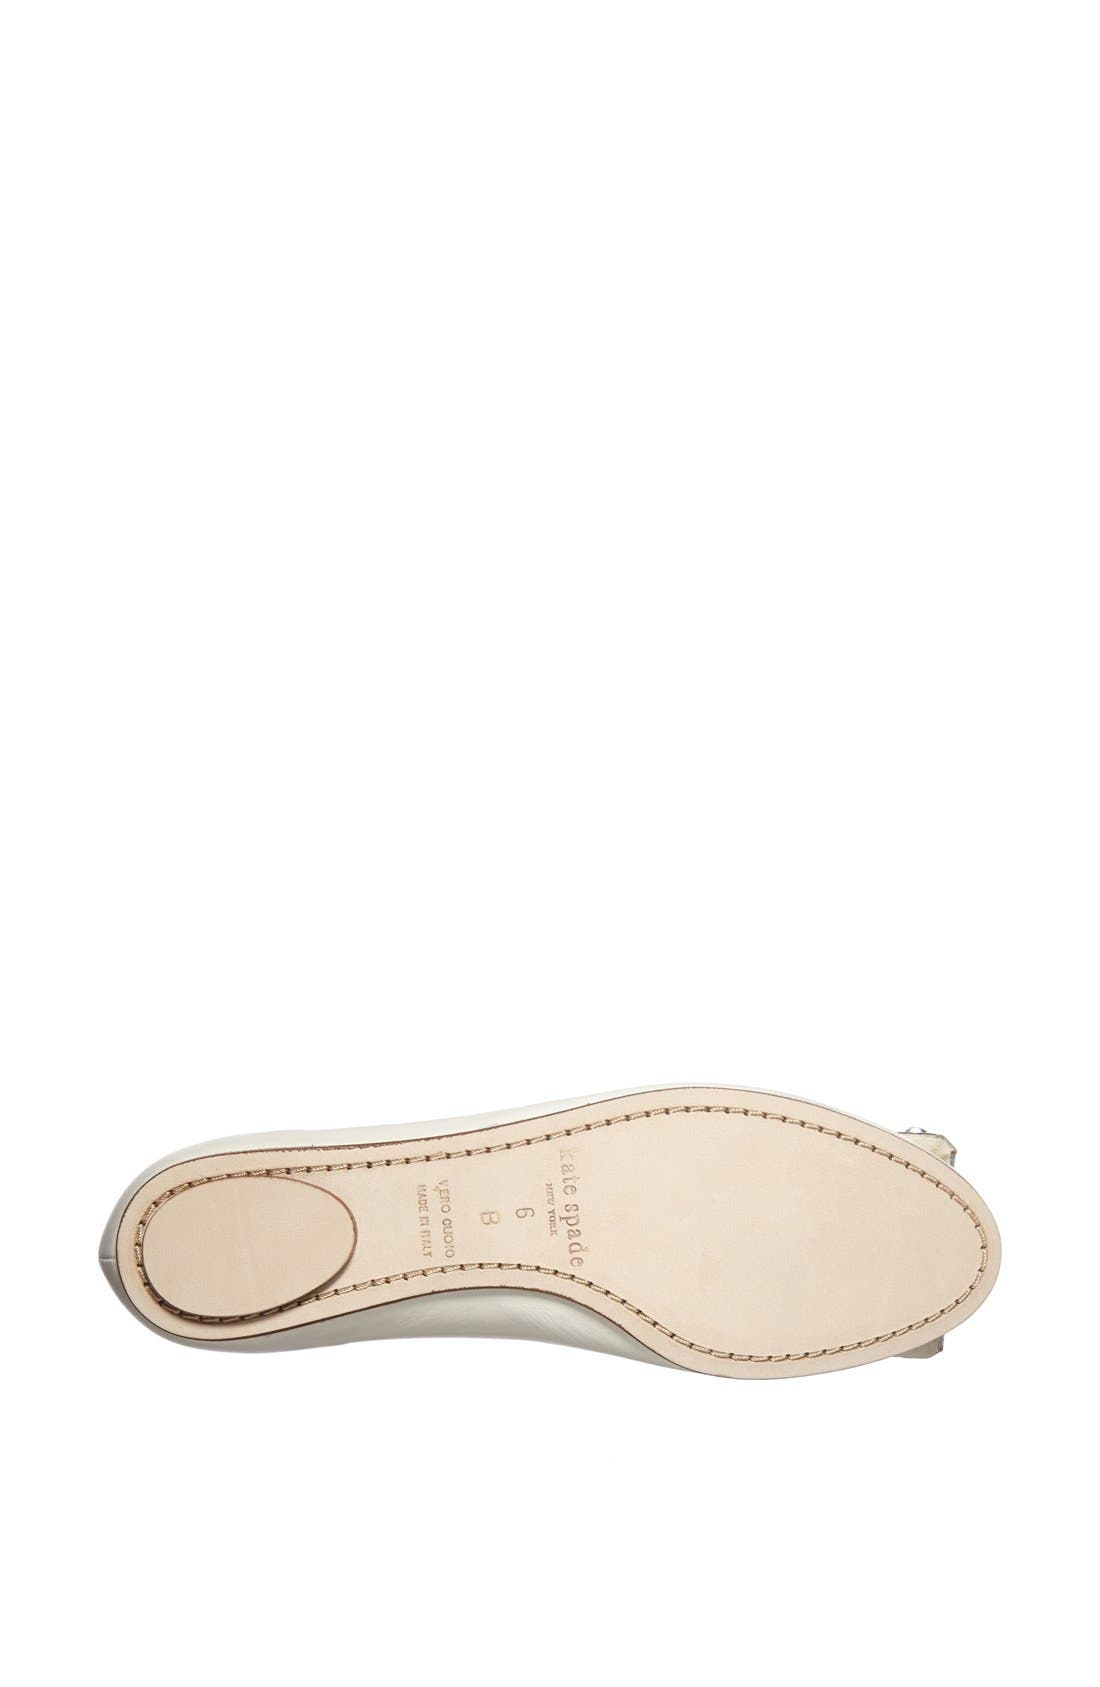 Alternate Image 3  - kate spade new york 'brilliant' nappa leather flat